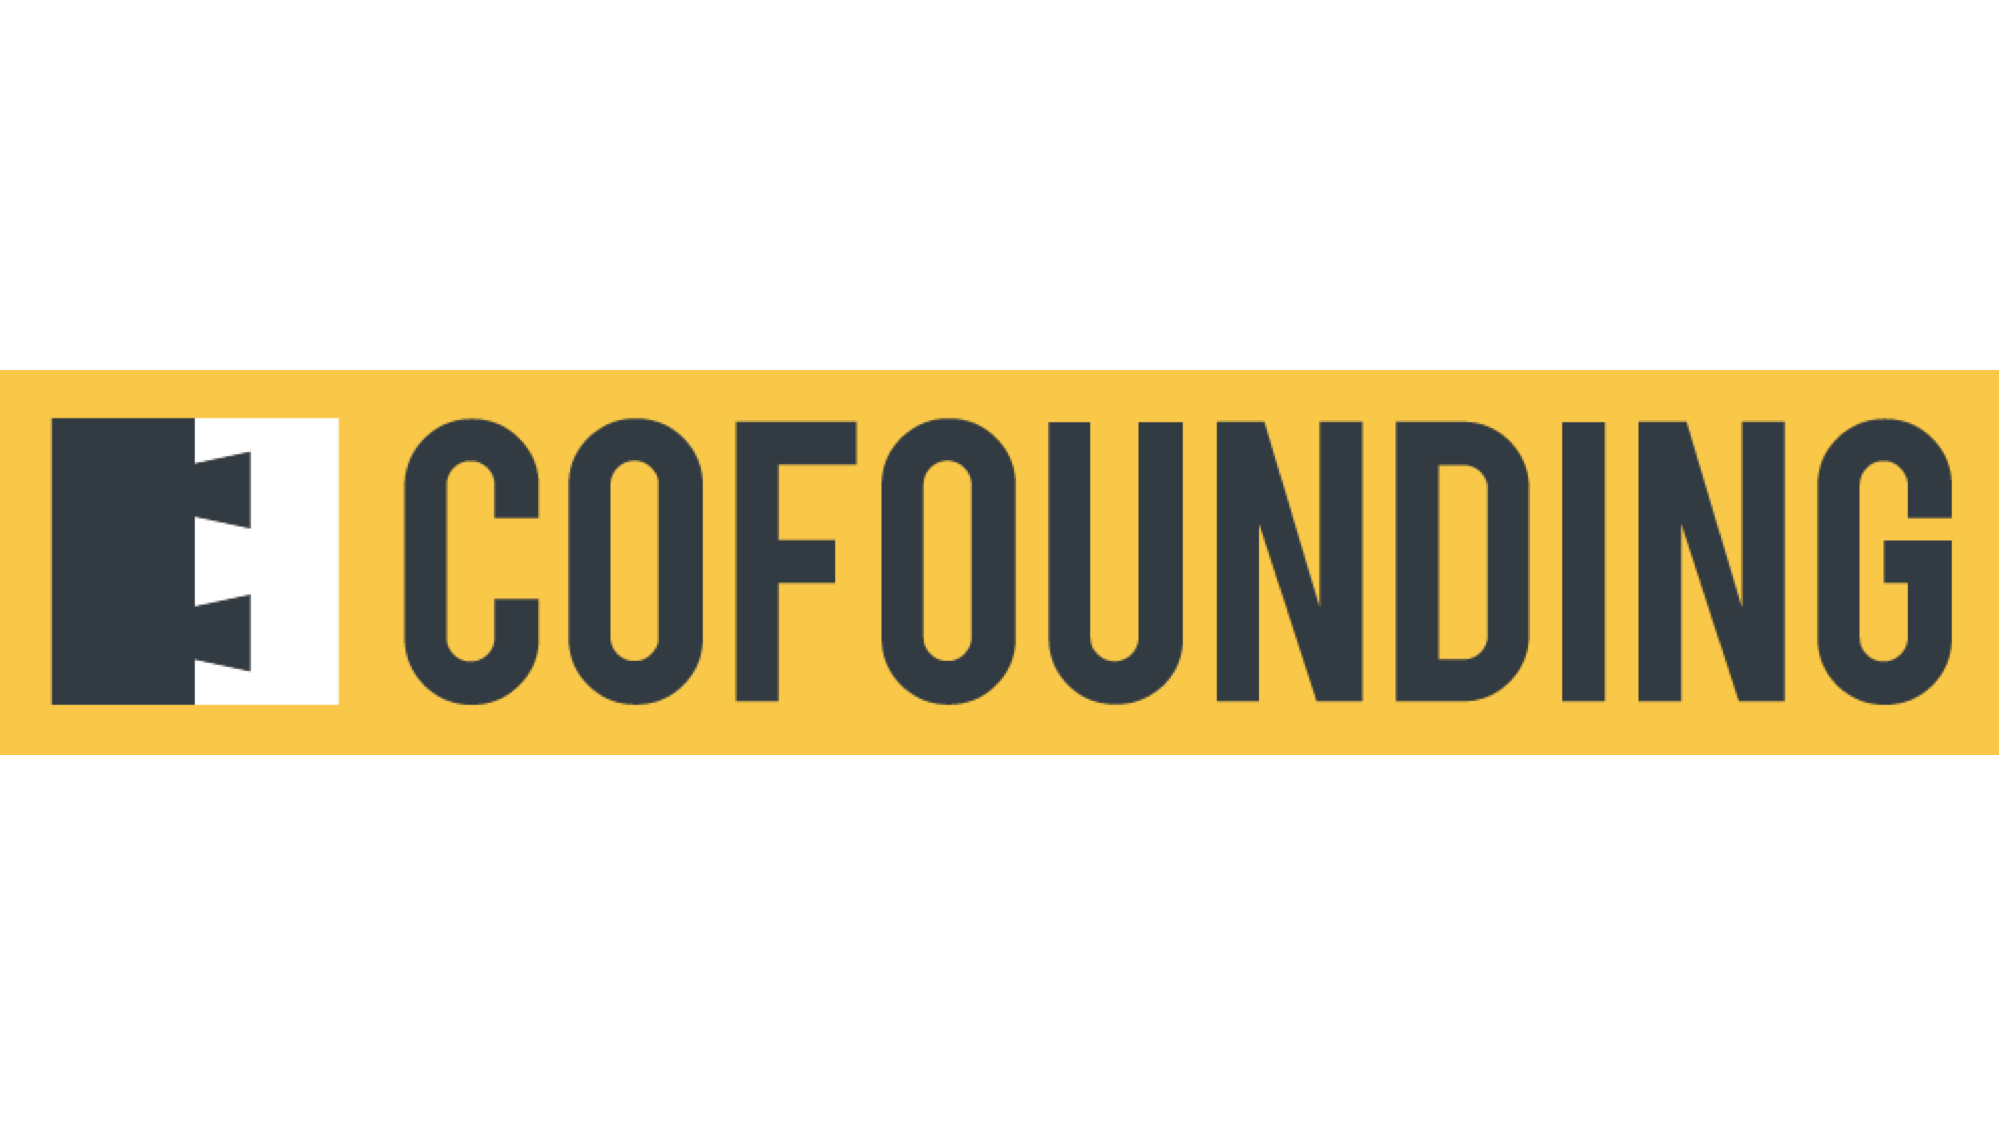 Co-Foundme